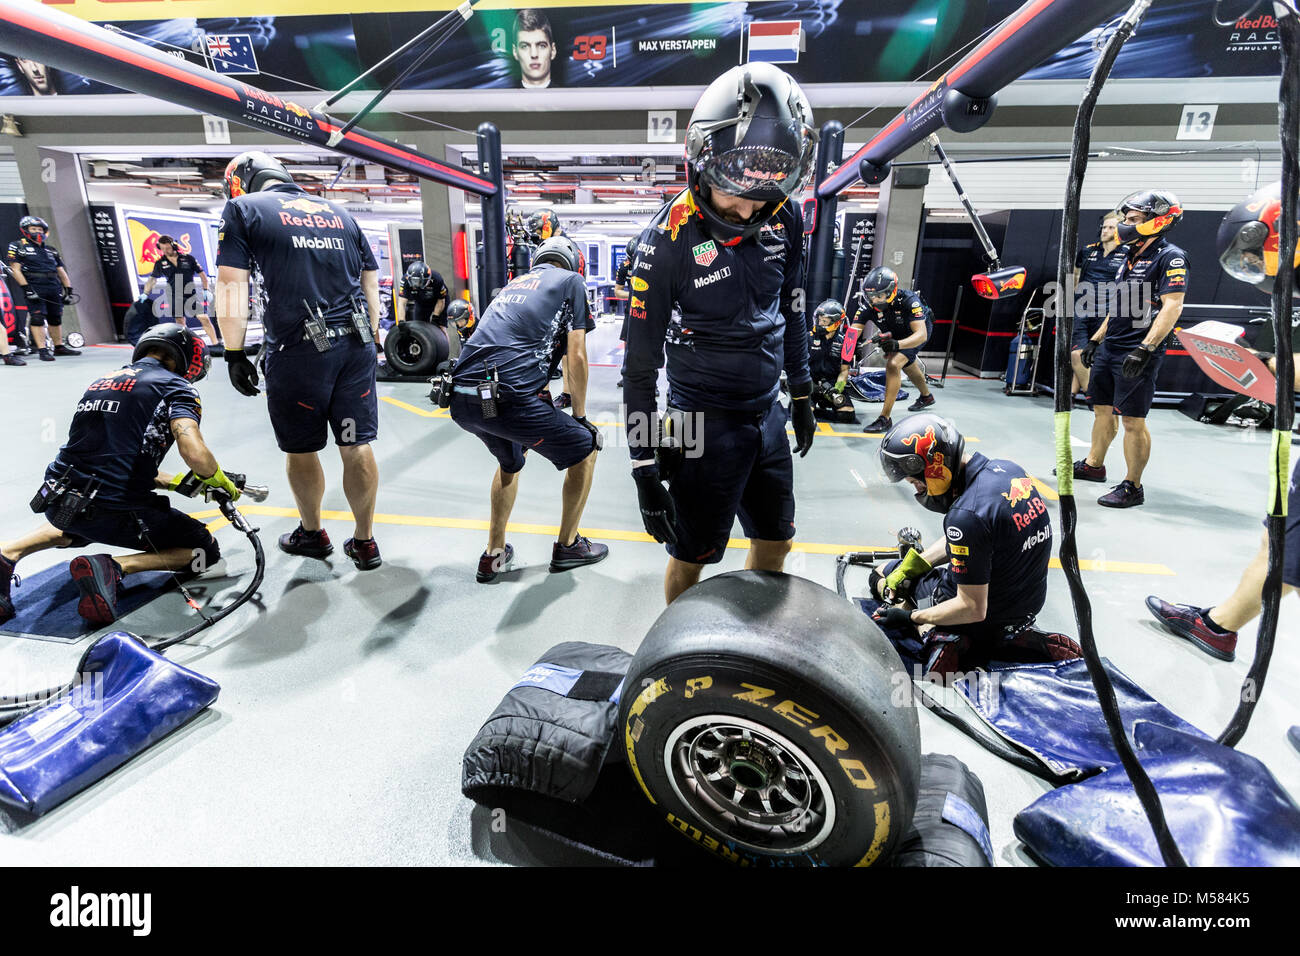 Formula One F1 Red Bull pit crew working on the garage during pit stop Stock Photo